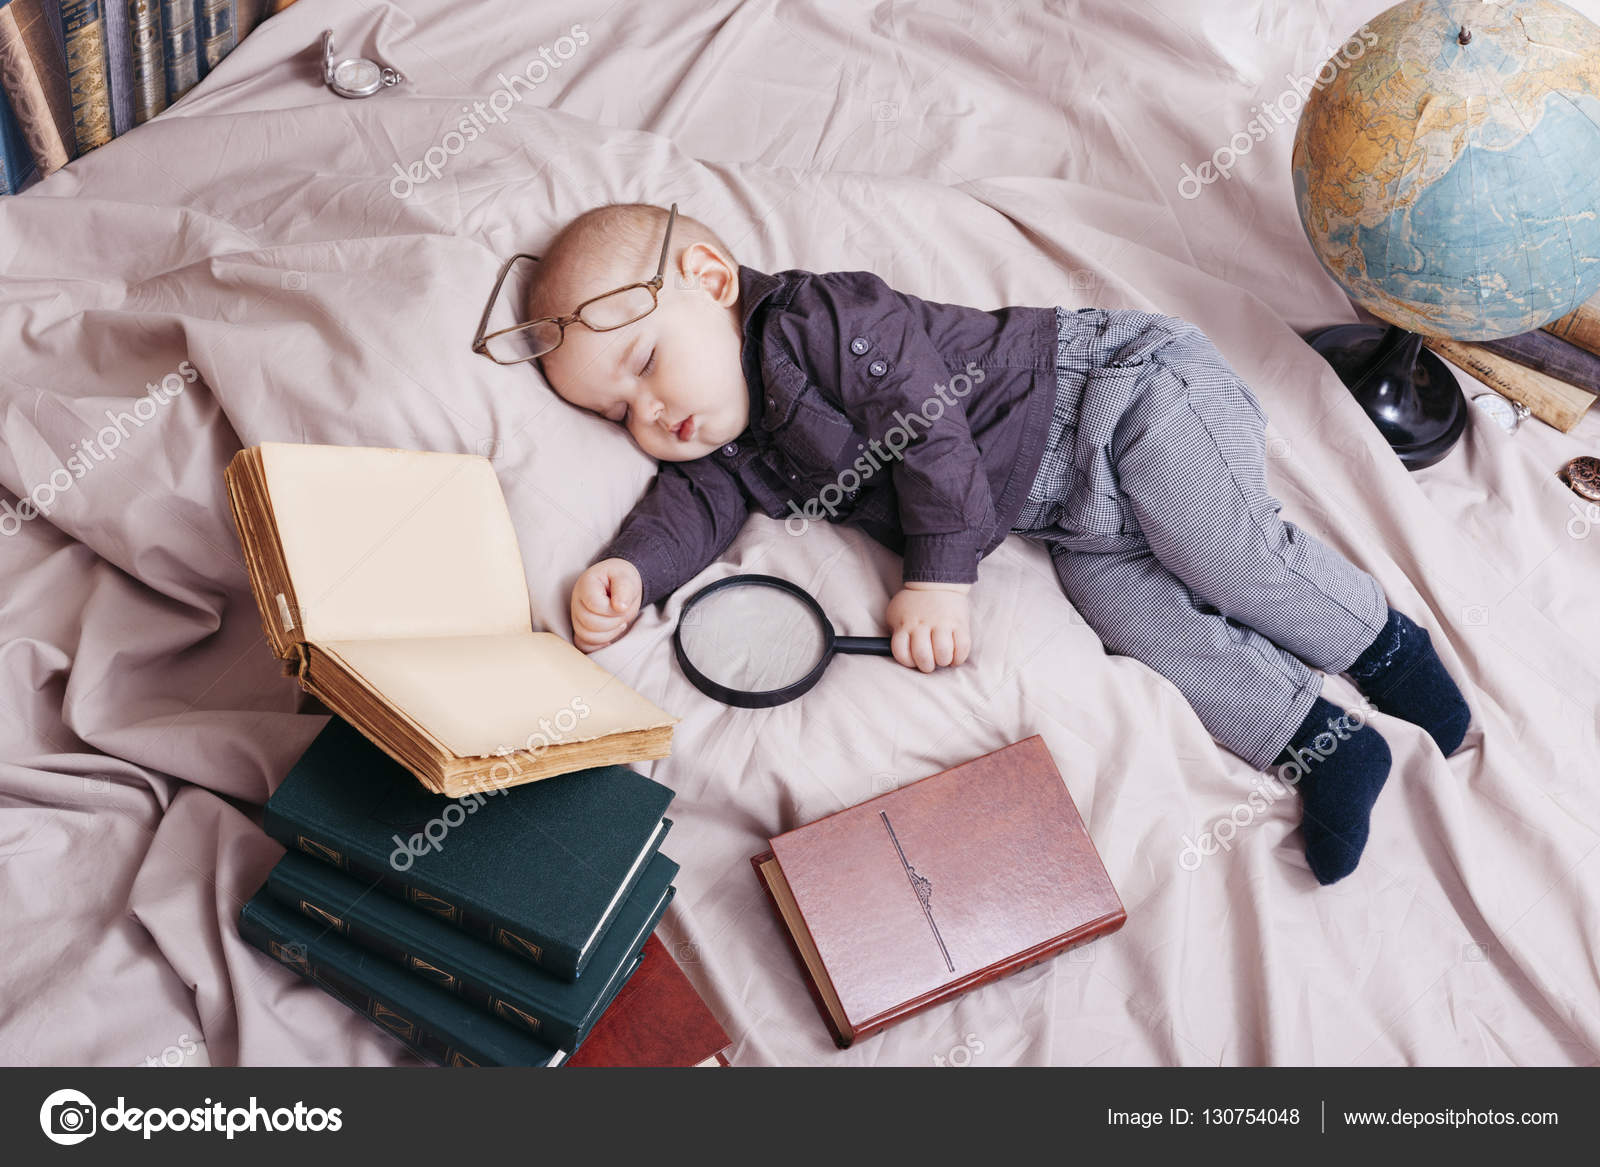 Funny Sleeping Baby In Glasses With Books And Globe Layout Stock Photo C Aksanat 130754048